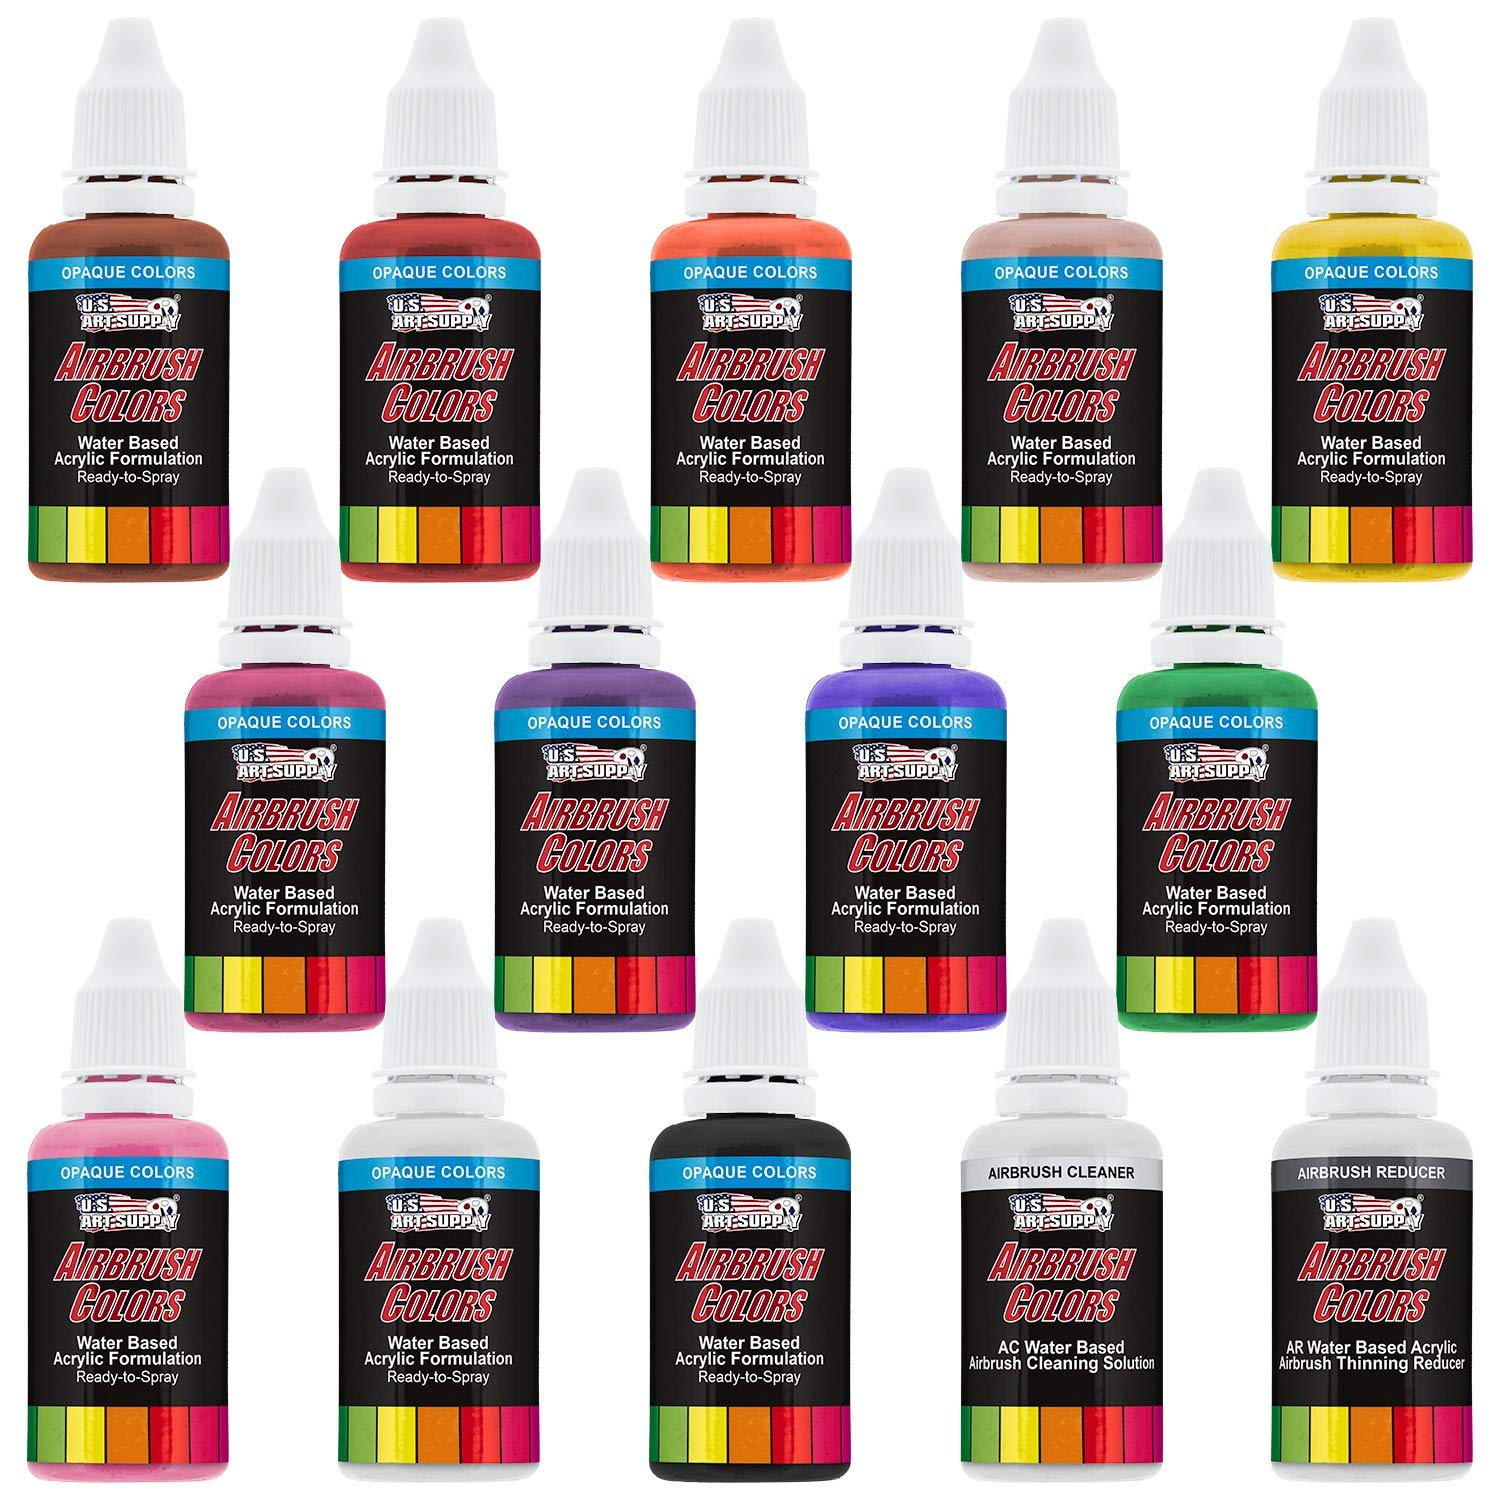 U.S. Art Supply 12 Color Set of Primary Opaque Colors Acrylic Airbrush, Leather & Shoe Paint Set with Reducer & Cleaner 1 oz. Bottles by US Art Supply